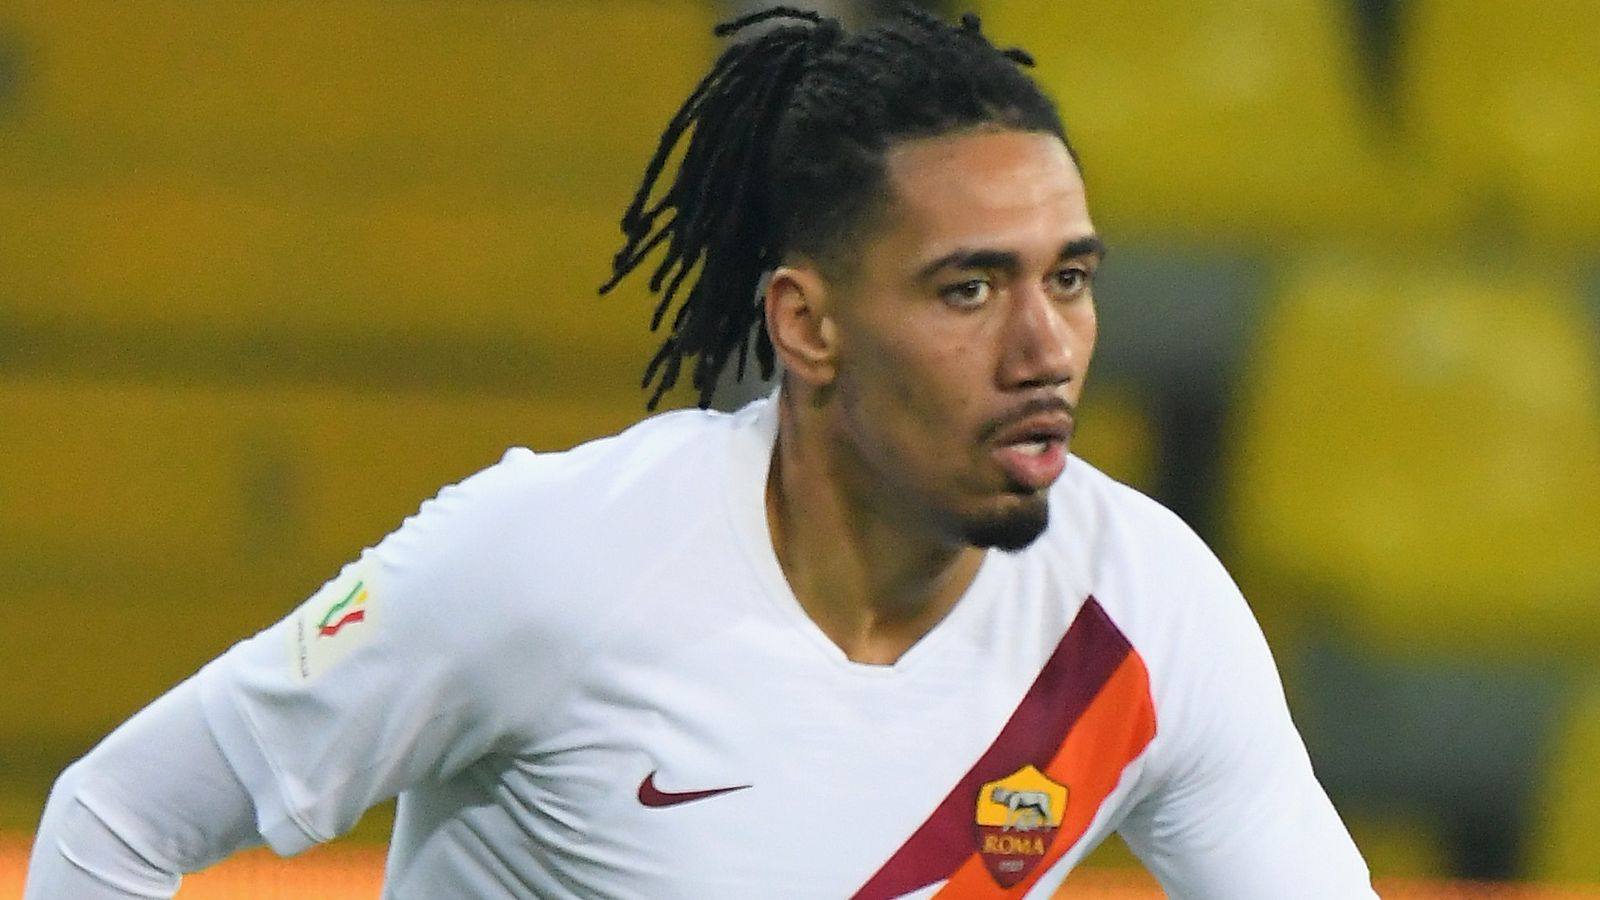 Man Utd's Chris Smalling refuses to give up on England during Roma loan